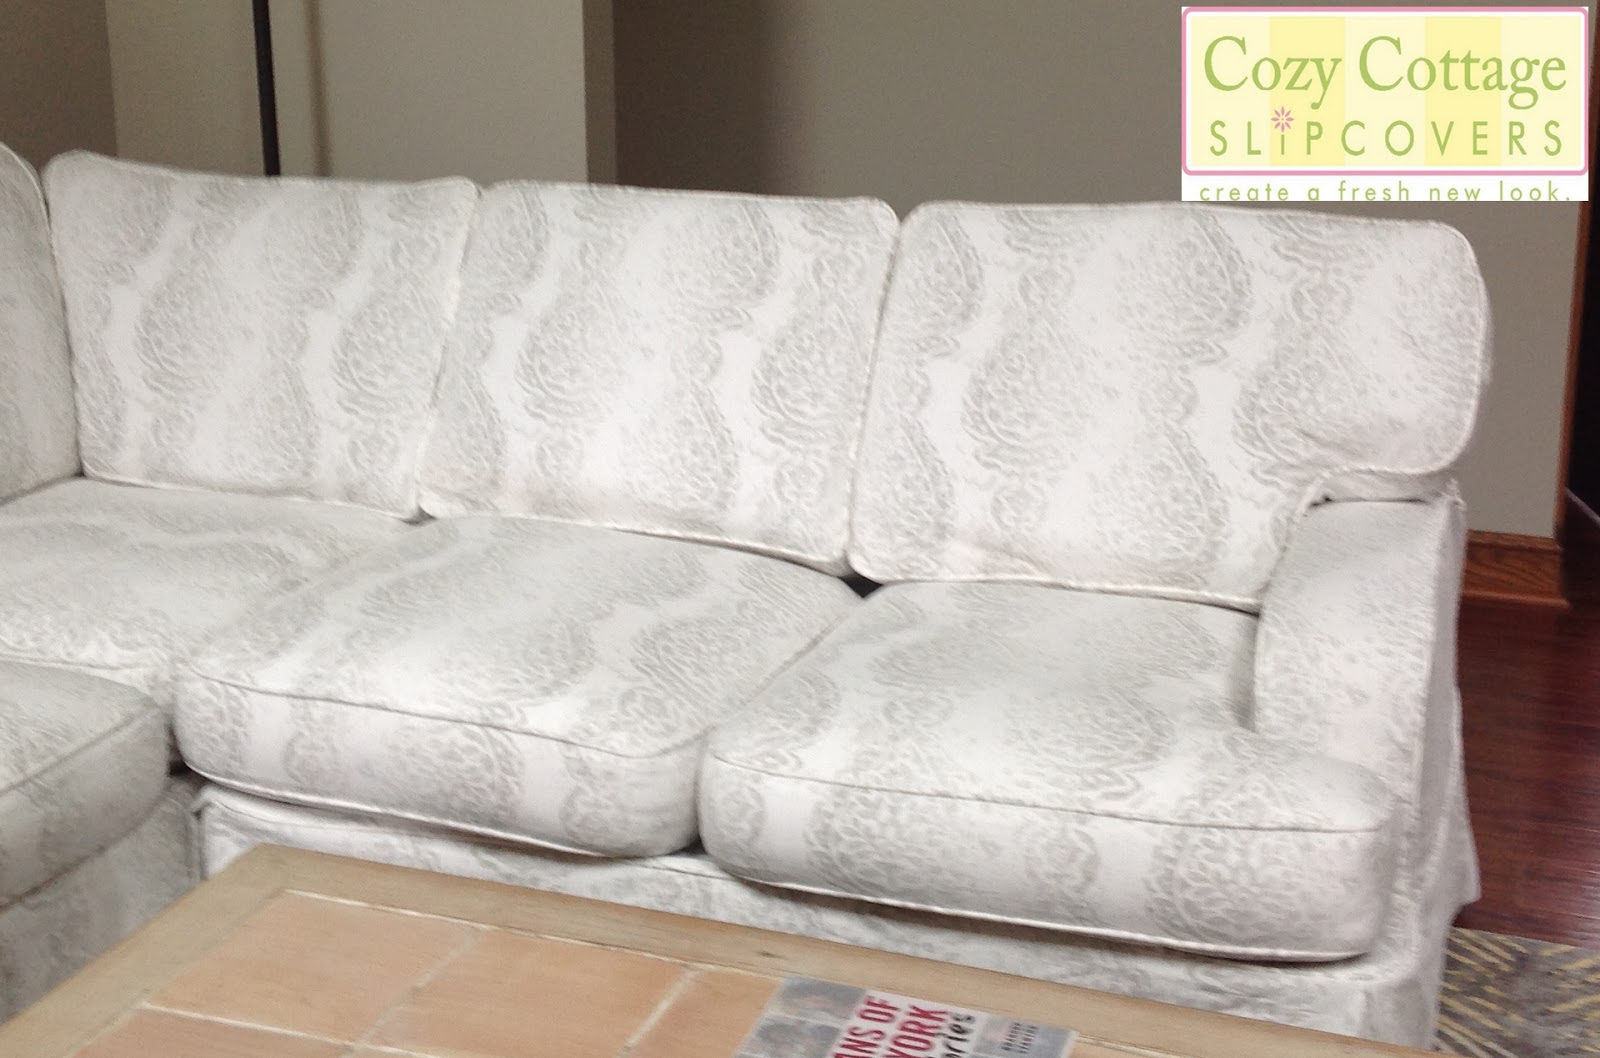 Cozy Cottage Slipcovers : sectionalmatching from cozycottageslipcovers.blogspot.ca size 1600 x 1058 jpeg 206kB